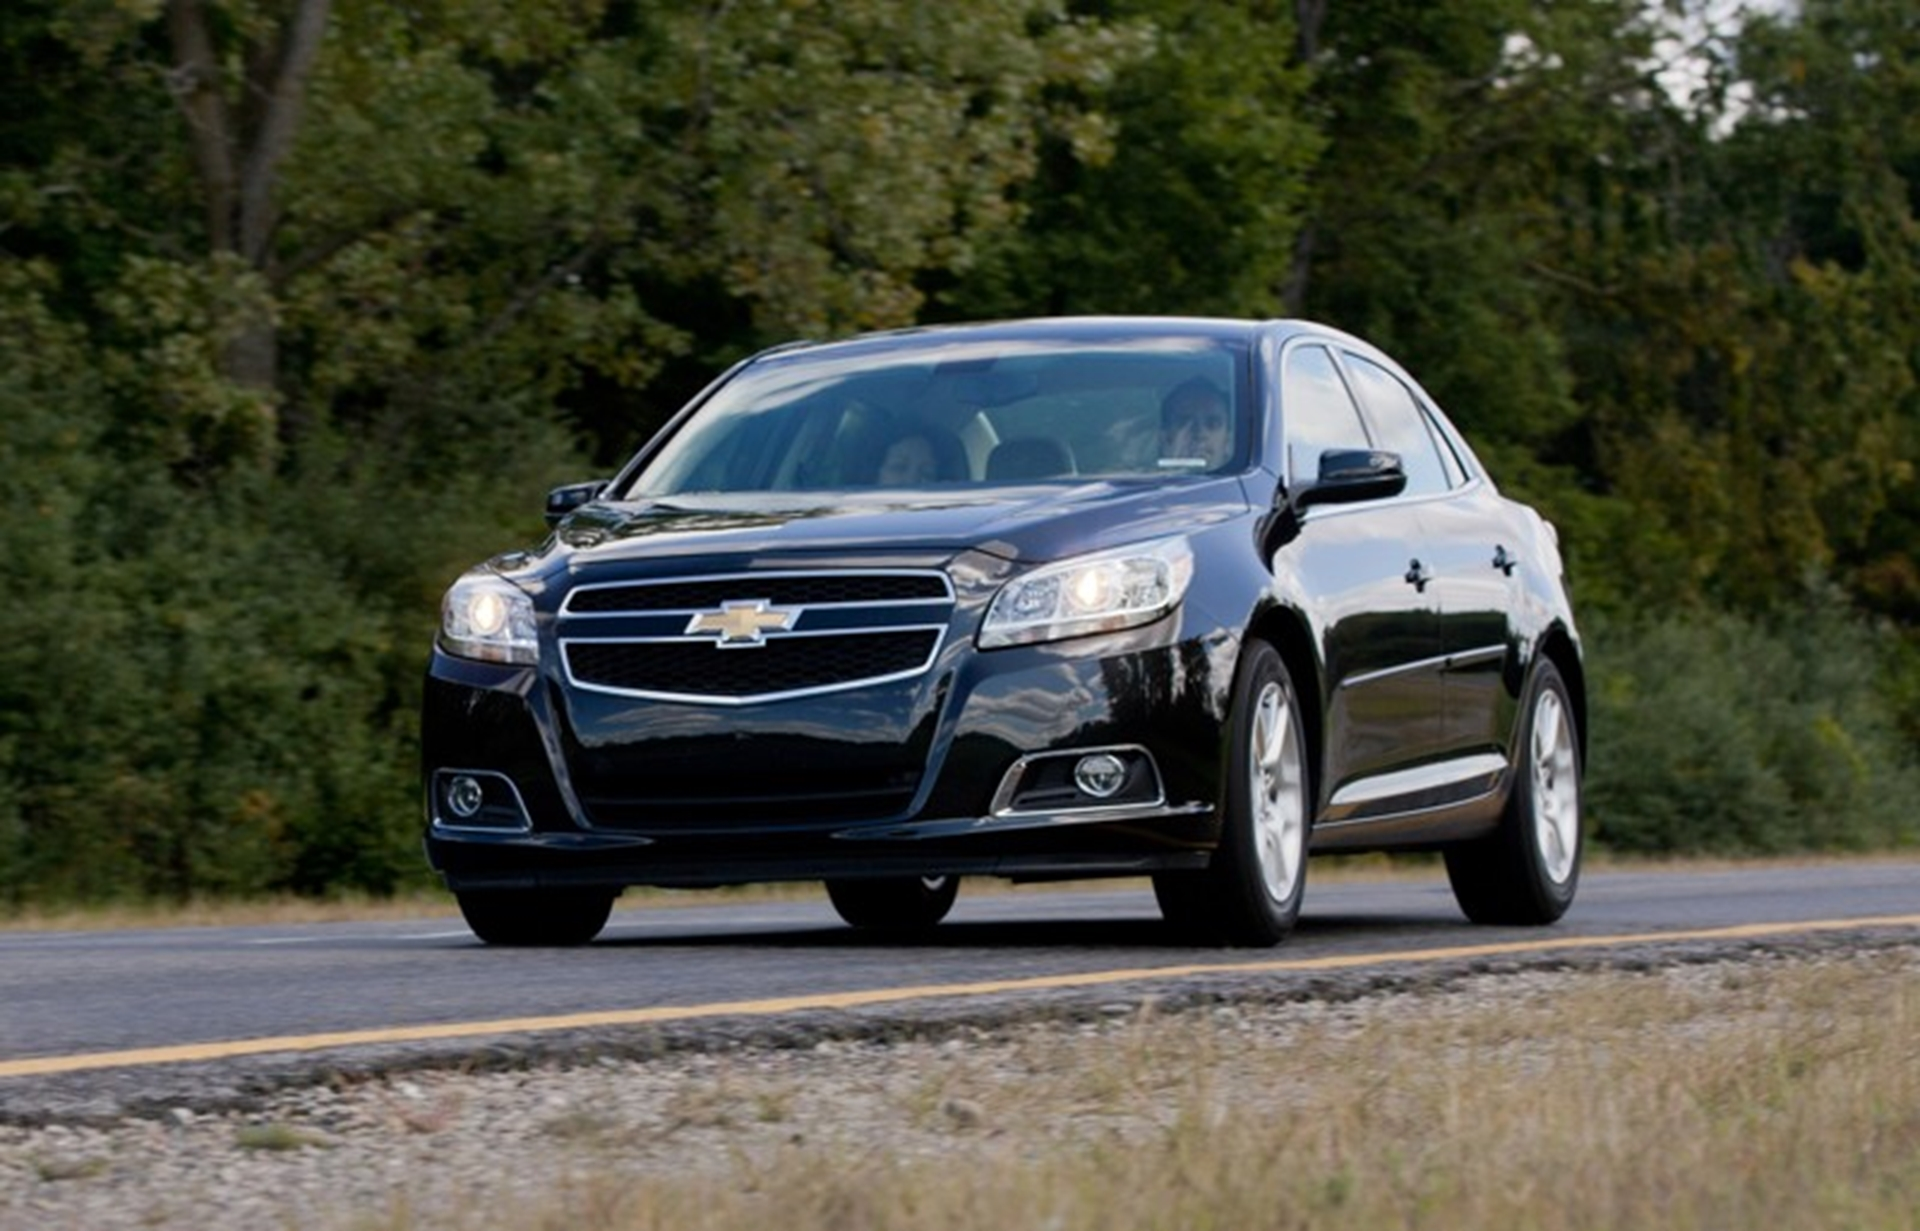 Chevrolet Malibu Safety